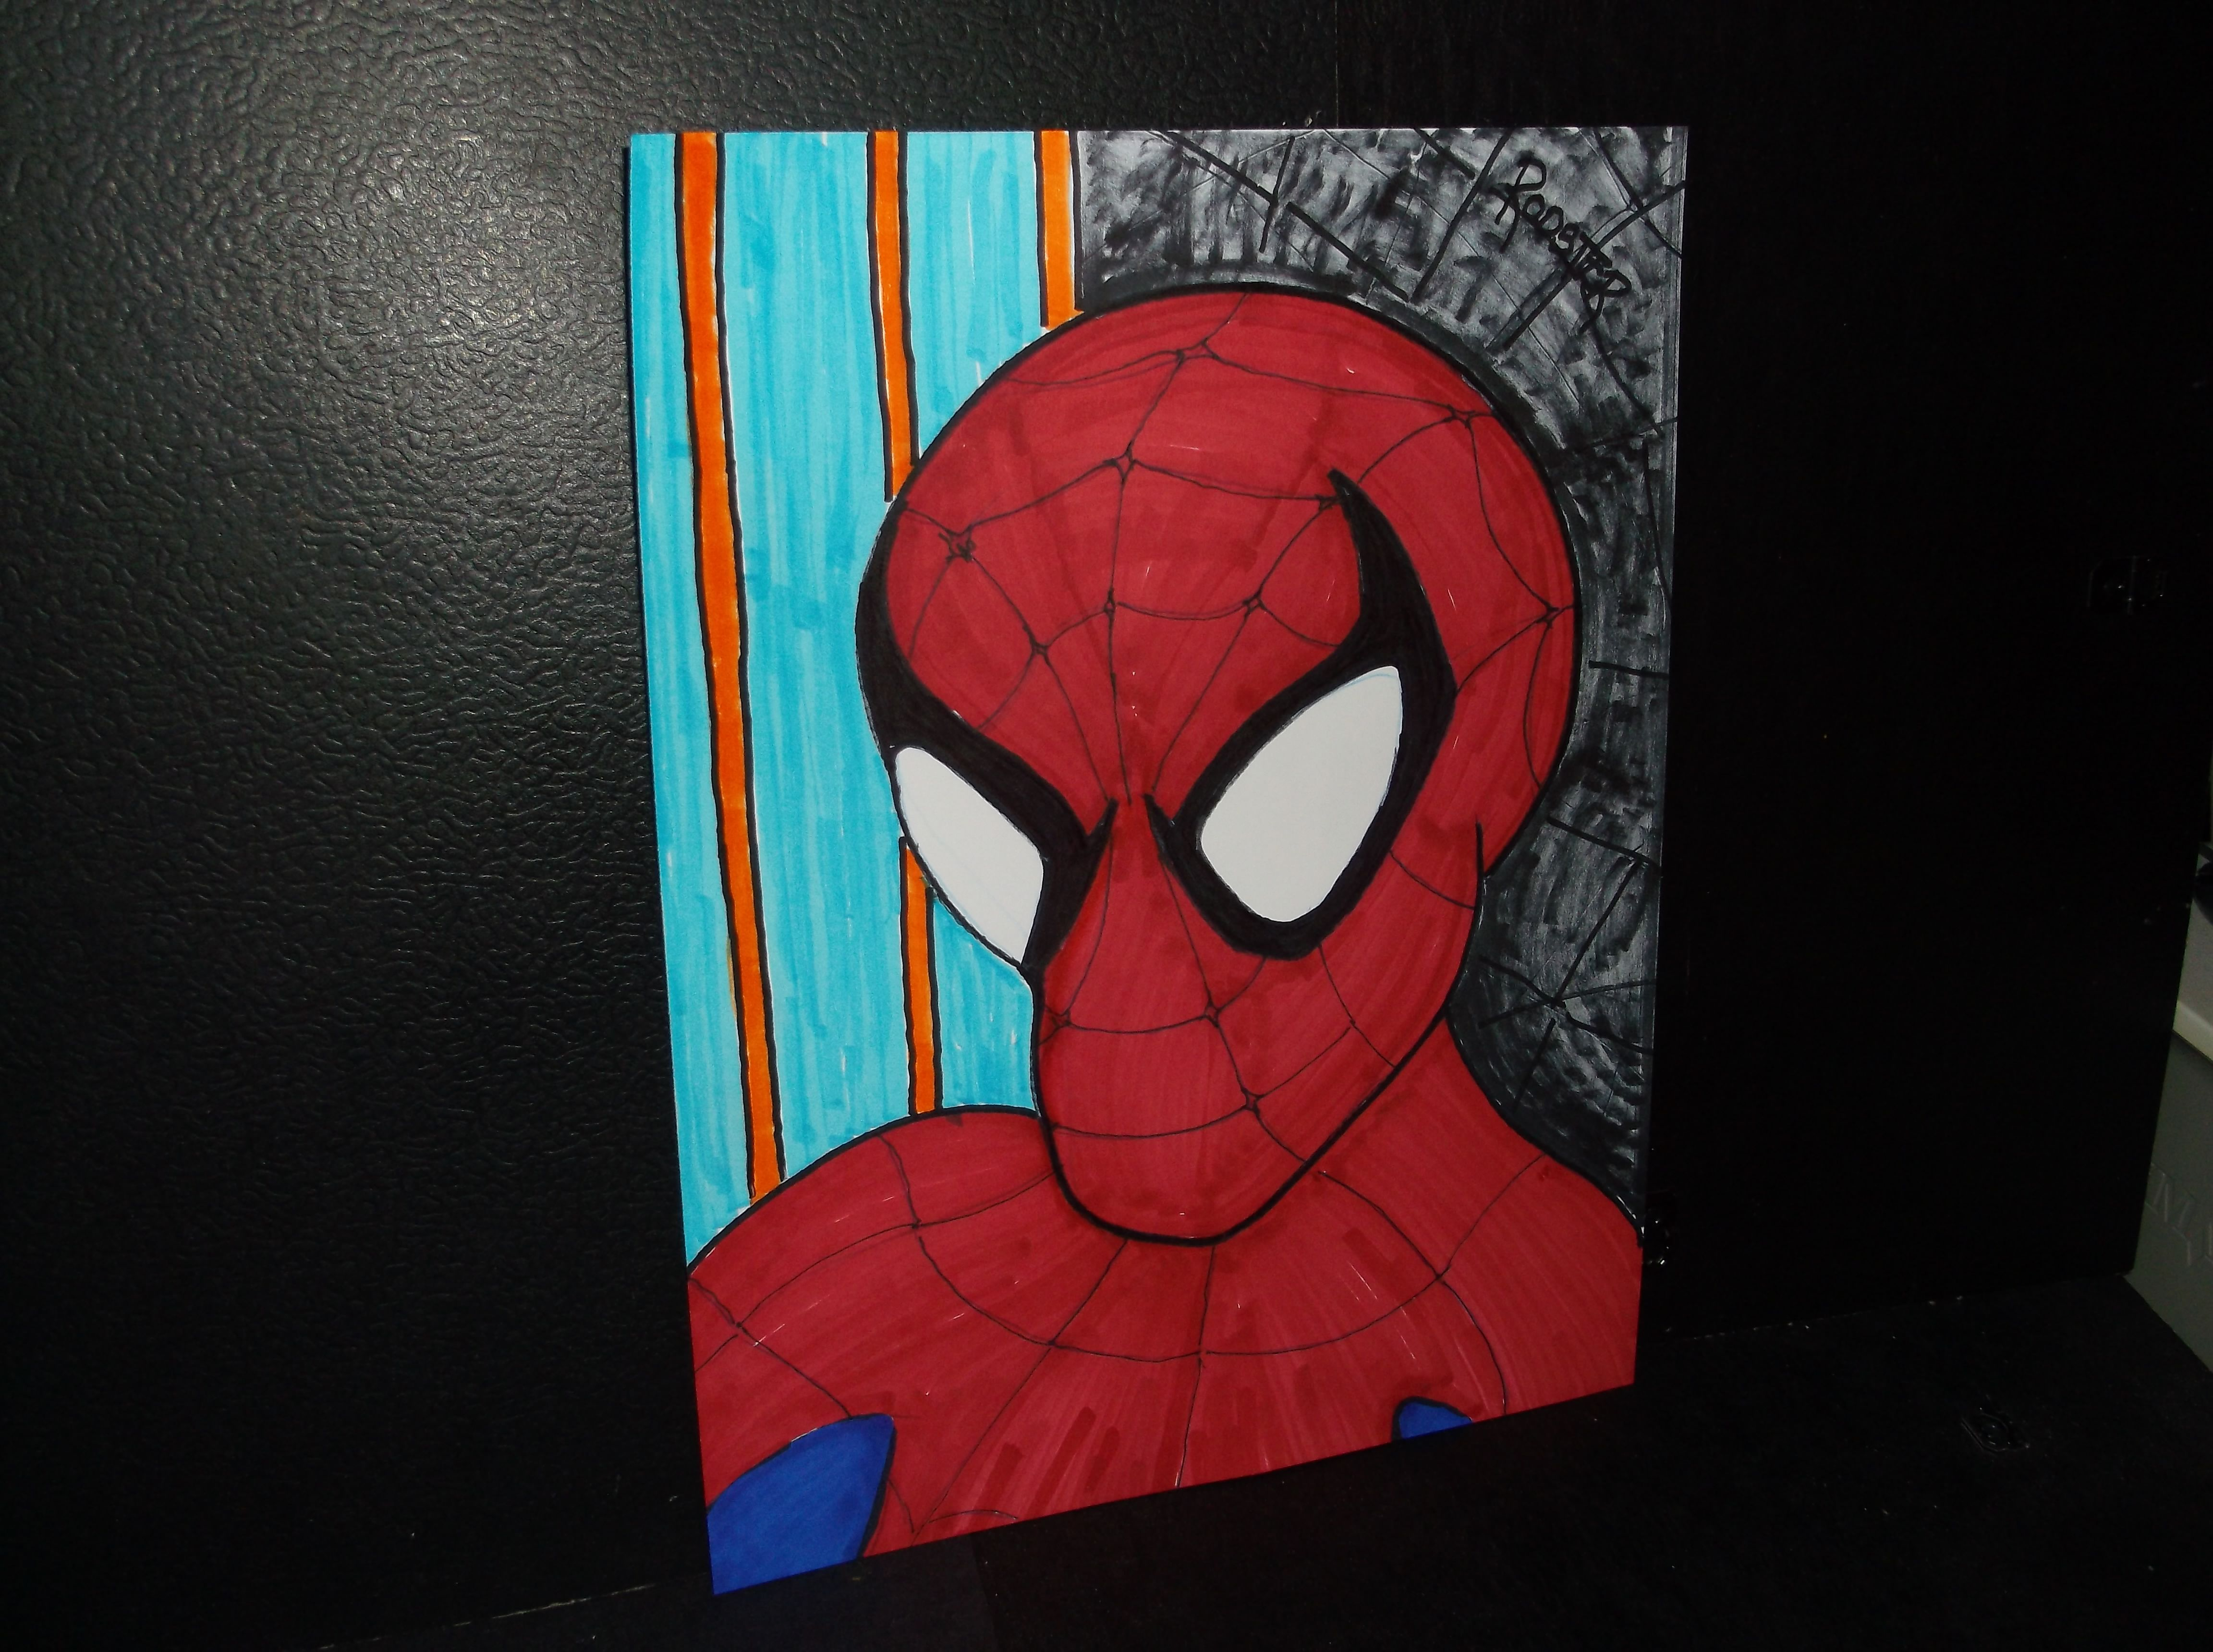 Drawing: Spidey by Rodster 8.5X11 on card stock